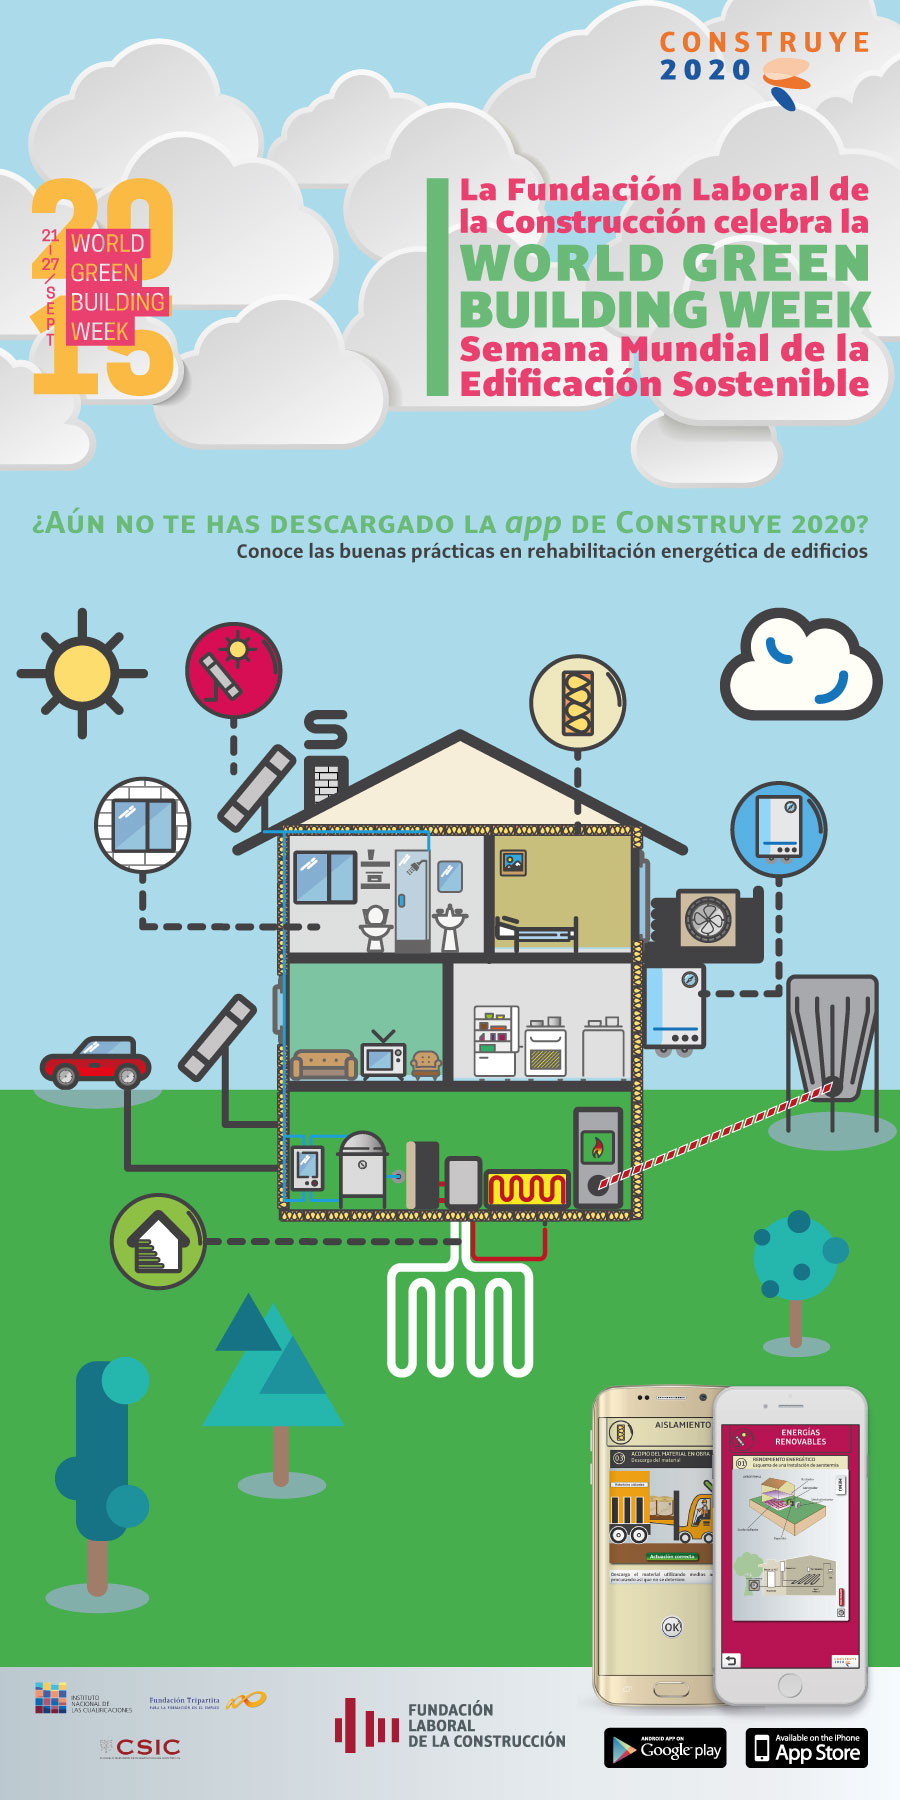 World Green Building Week, Semana Mundial de la Edificación Sostenible, app Construccion sostenible